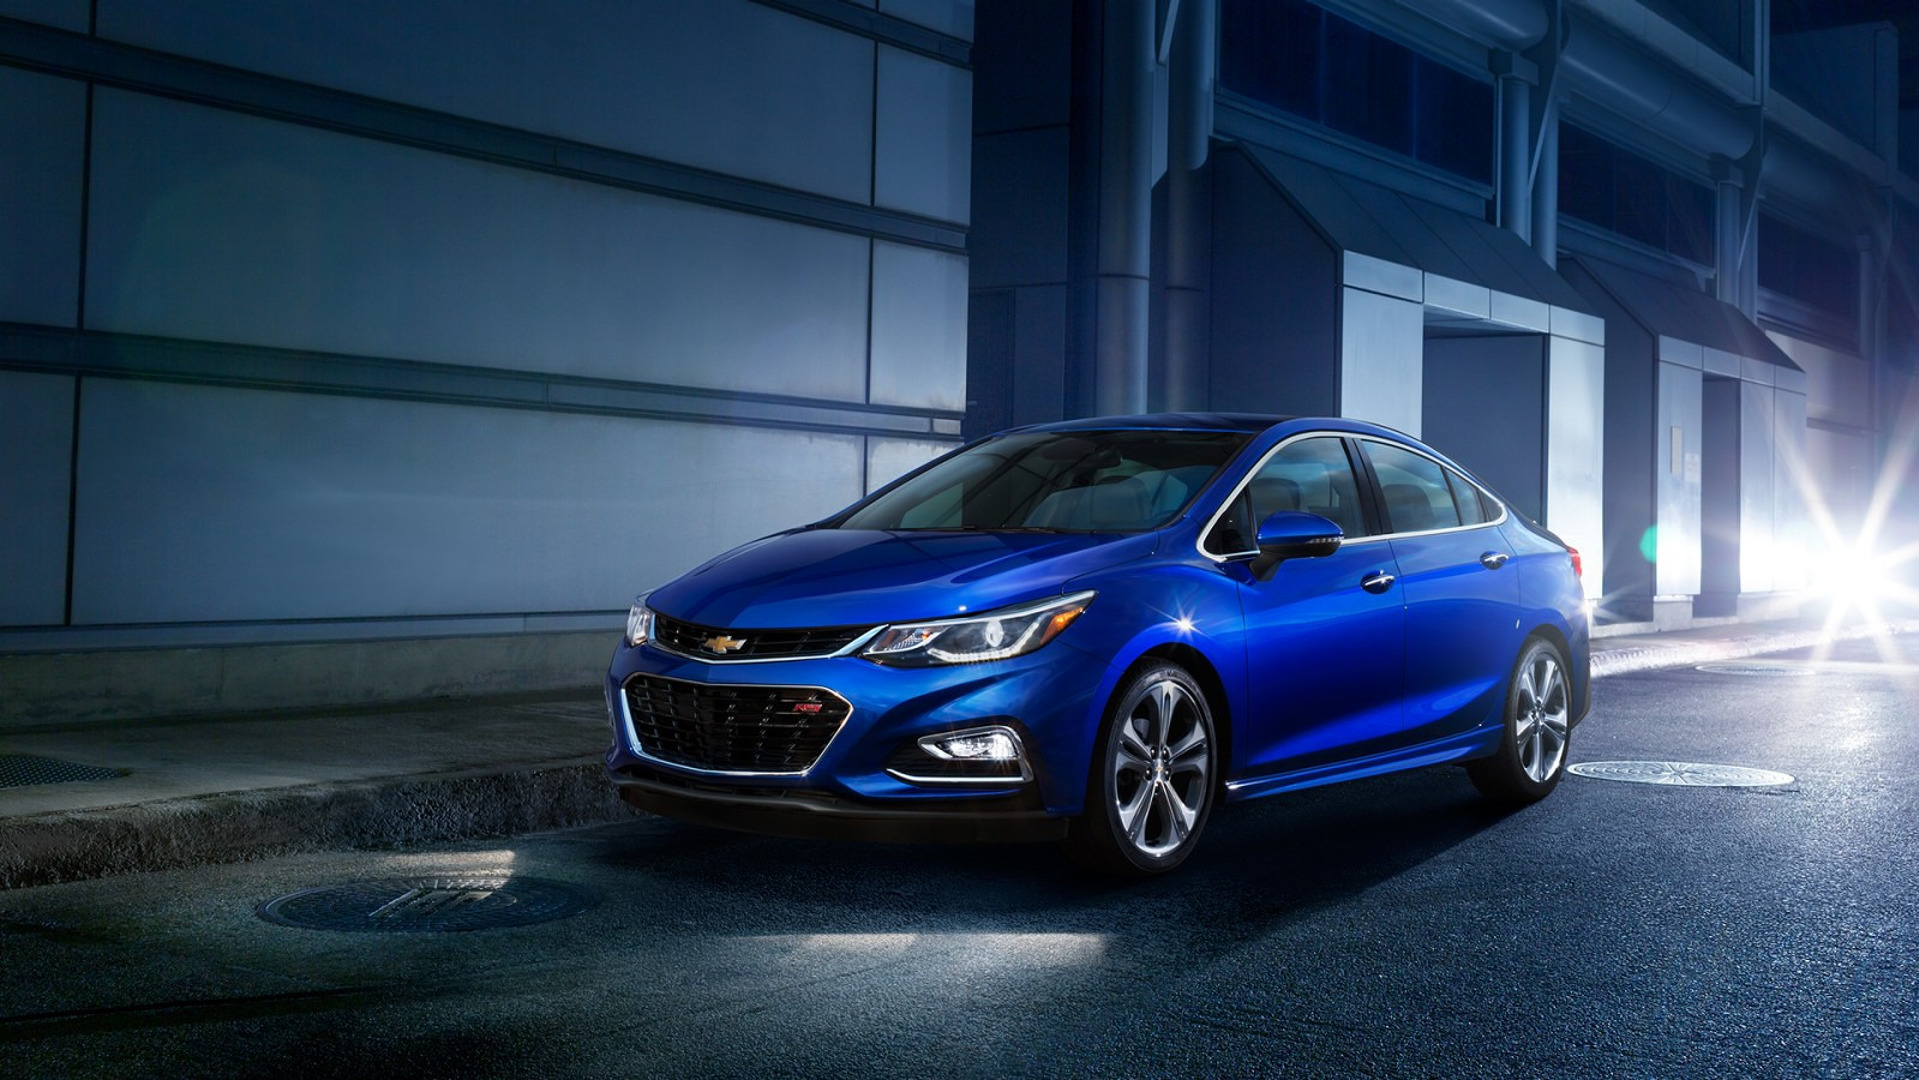 Chevy Cruze Sel Manual Achieves 52 Mpg Highest Epa Estimate